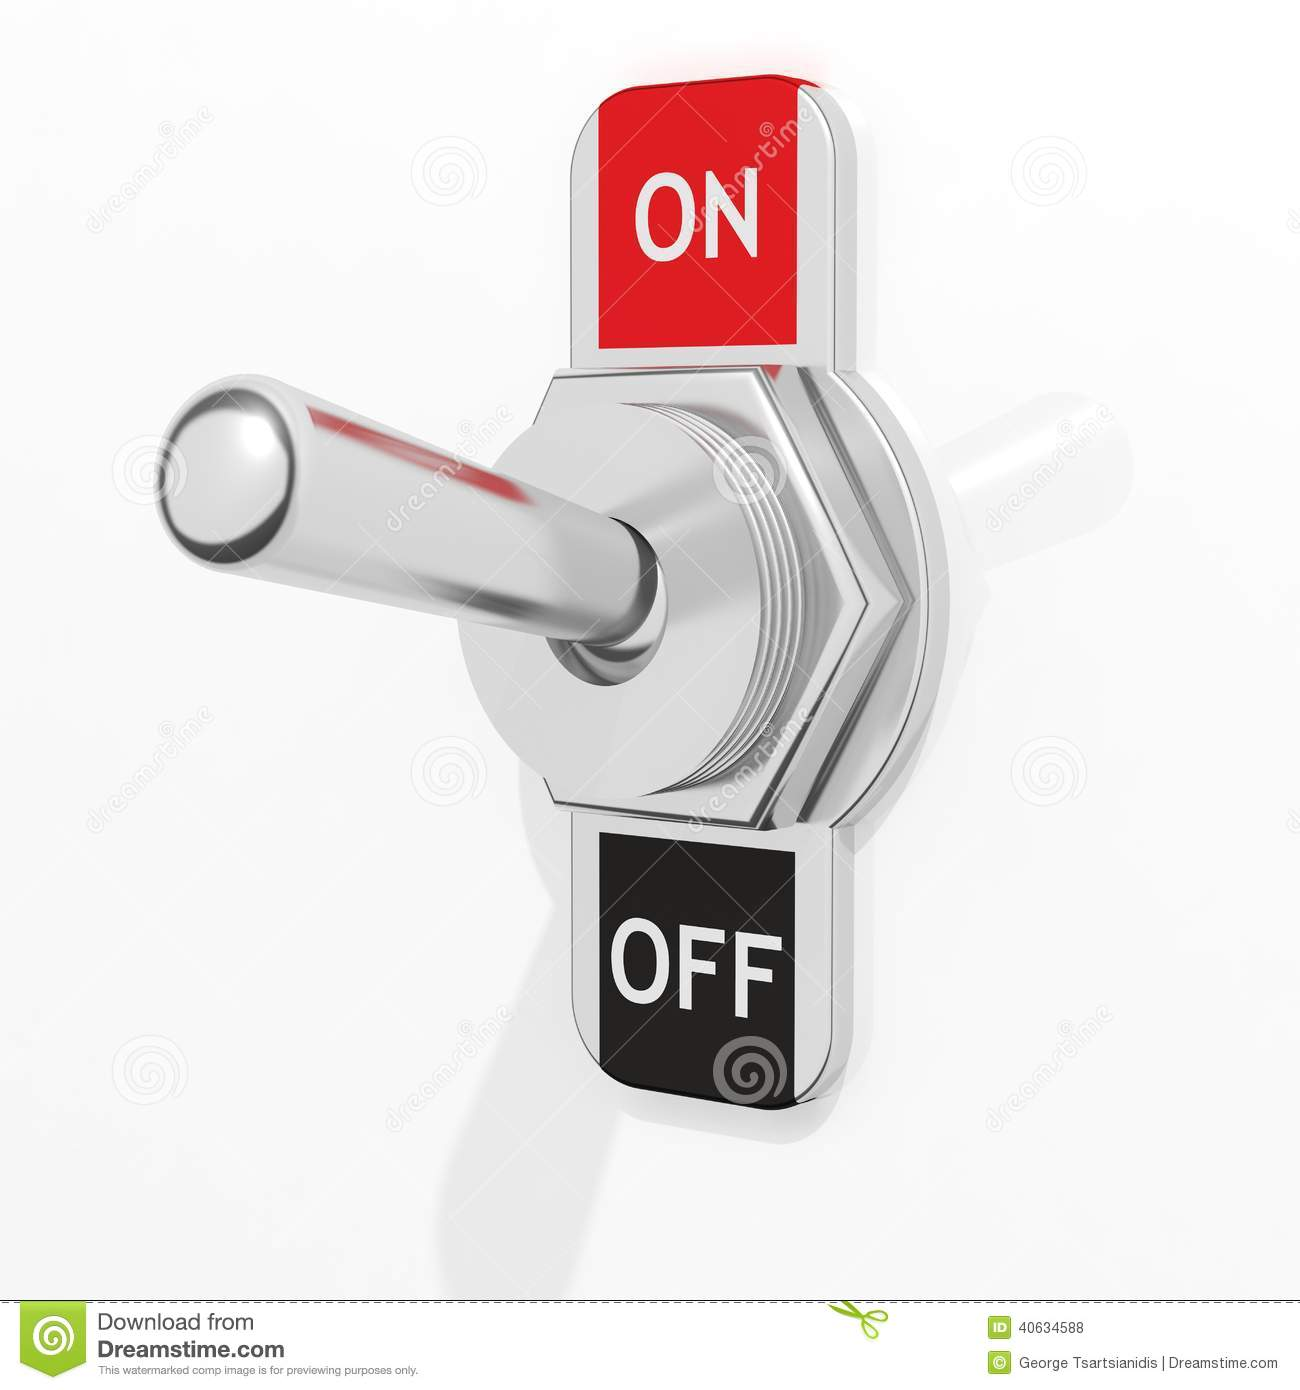 3d element on off switch stock illustration illustration of part